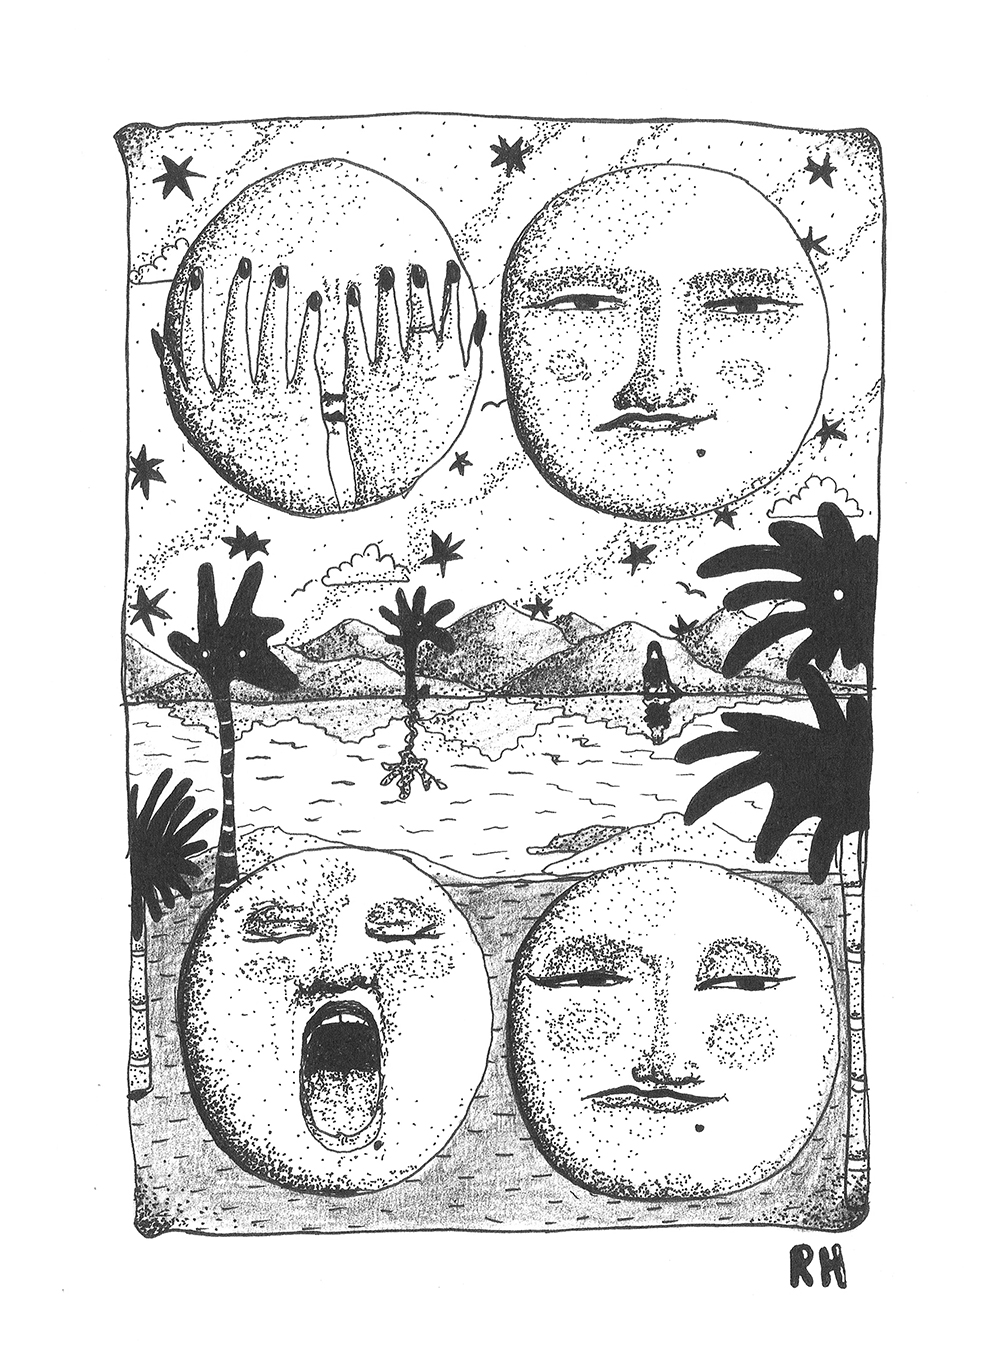 Moons with faces